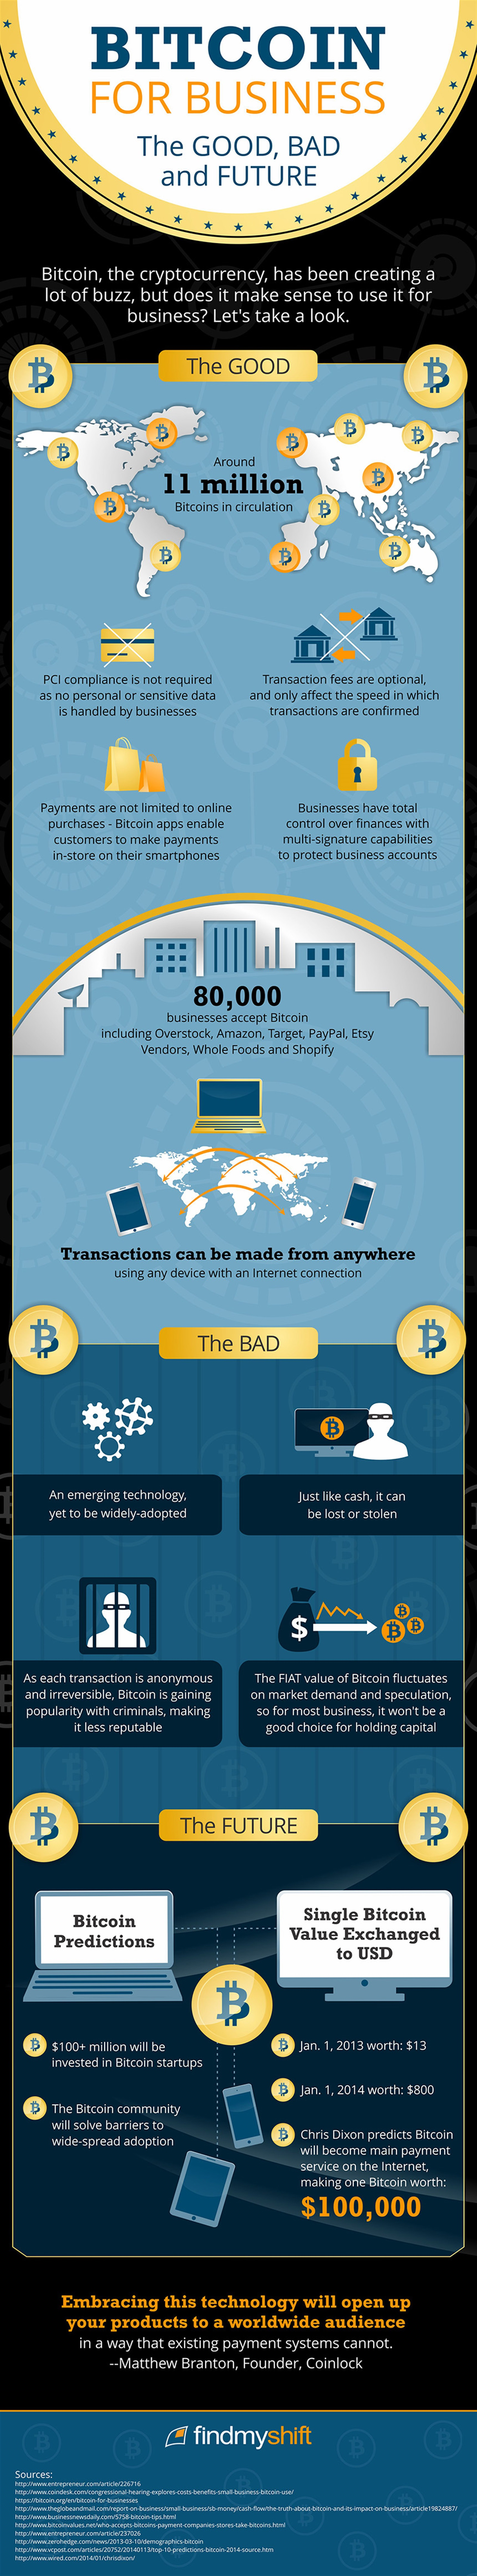 Bitcoin for business - The good, the bad and the future